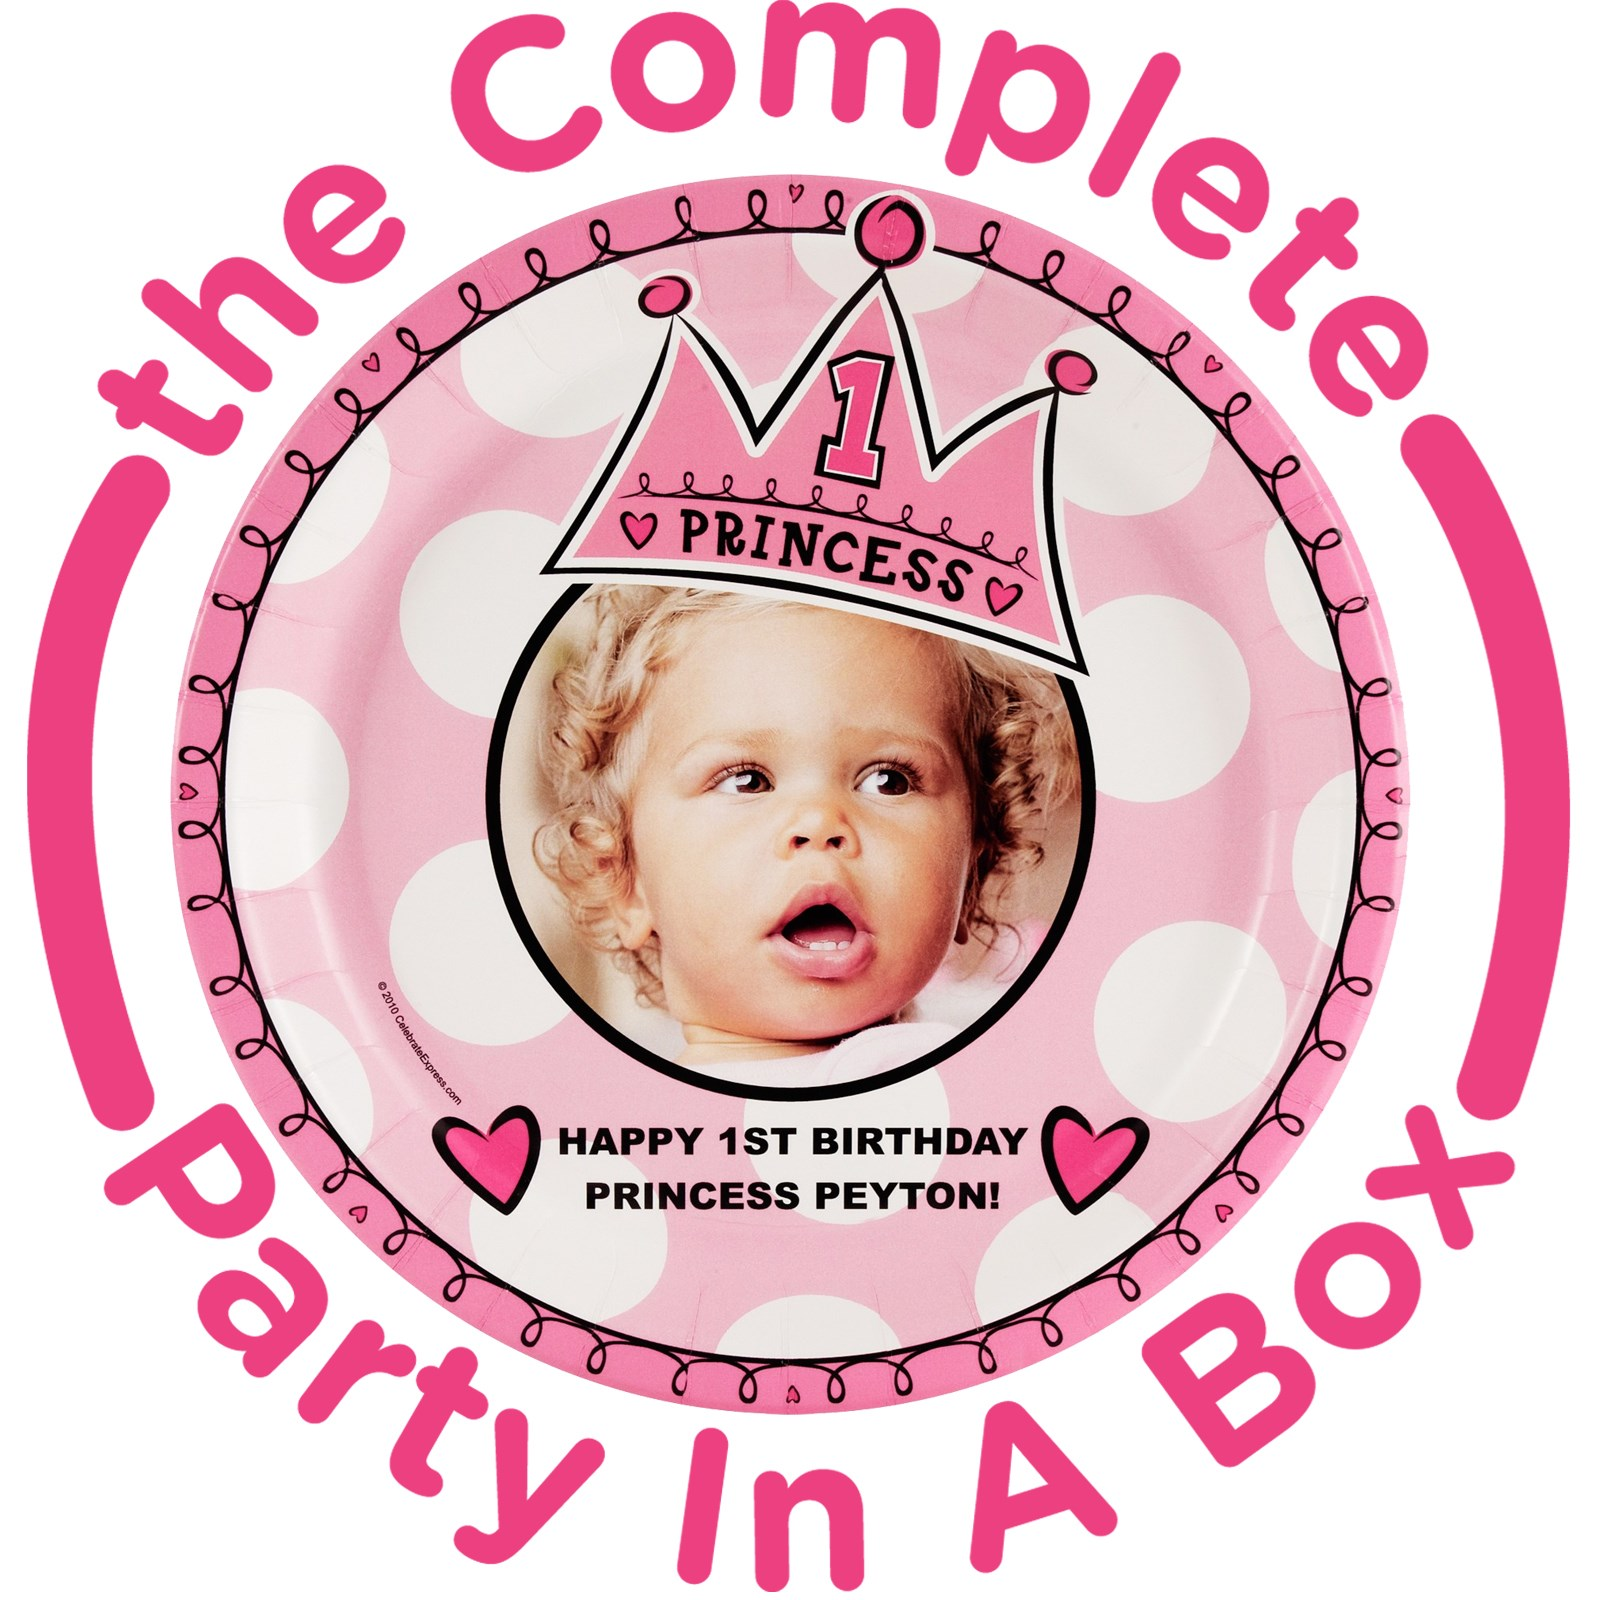 Birthday Princess 1st Birthday Personalized Party in a Box - Deluxe - 16 Guests